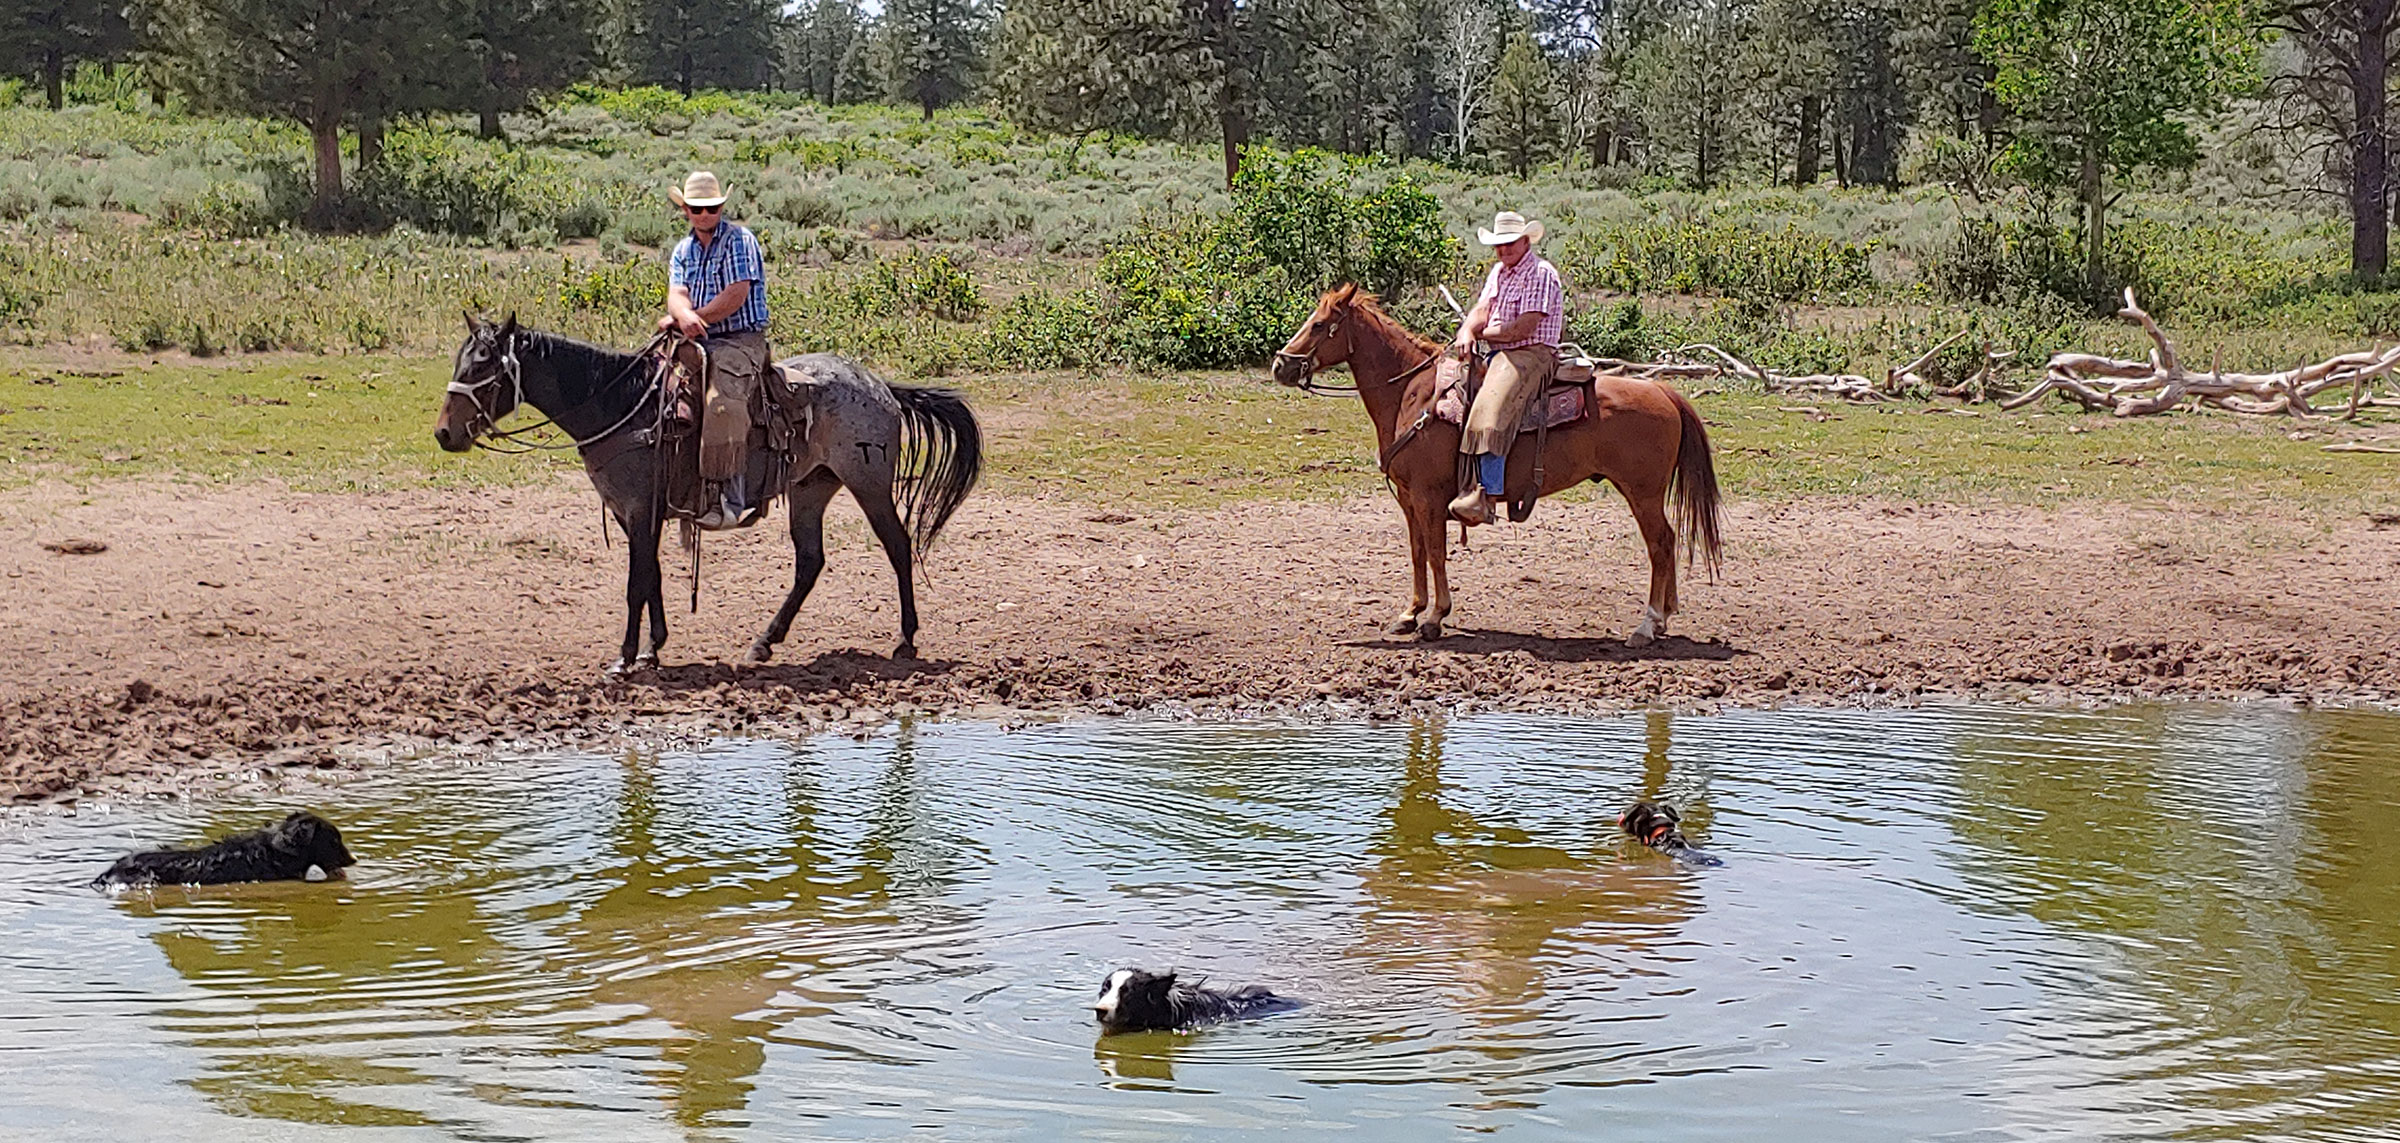 TBone and Kip the cow dogs cool off in a nearly-dry pond after looking for cattle, with Dean and Howard VanWinkle looking on.